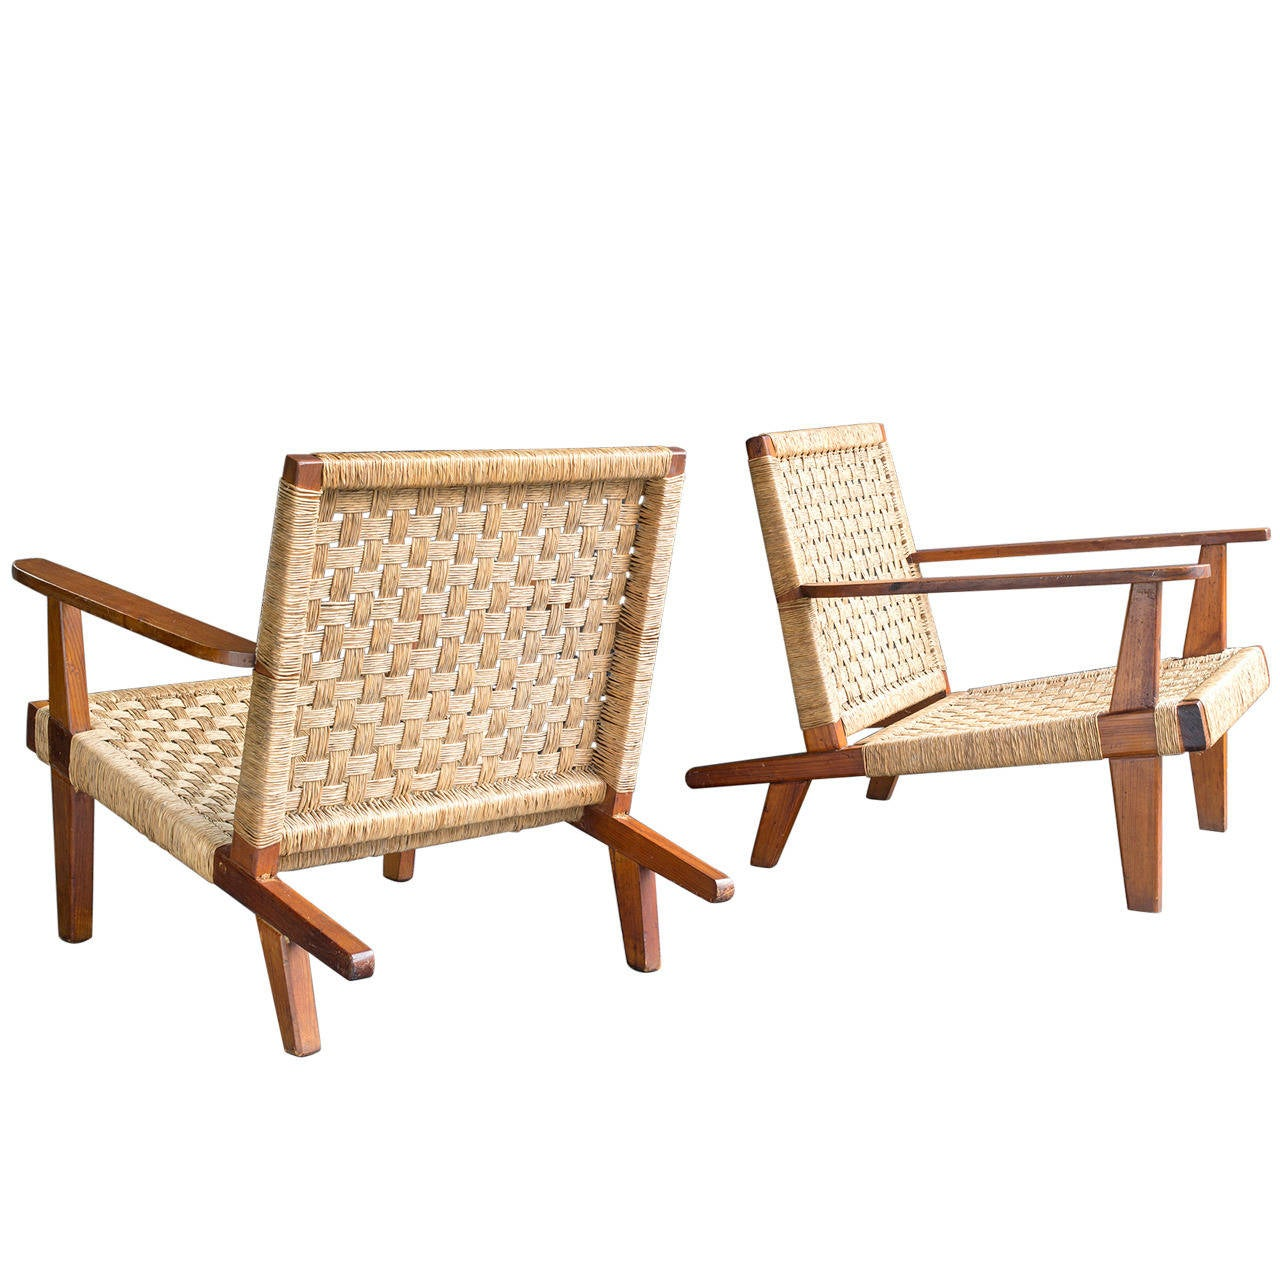 Clara Porset Lounge Chairs For Sale